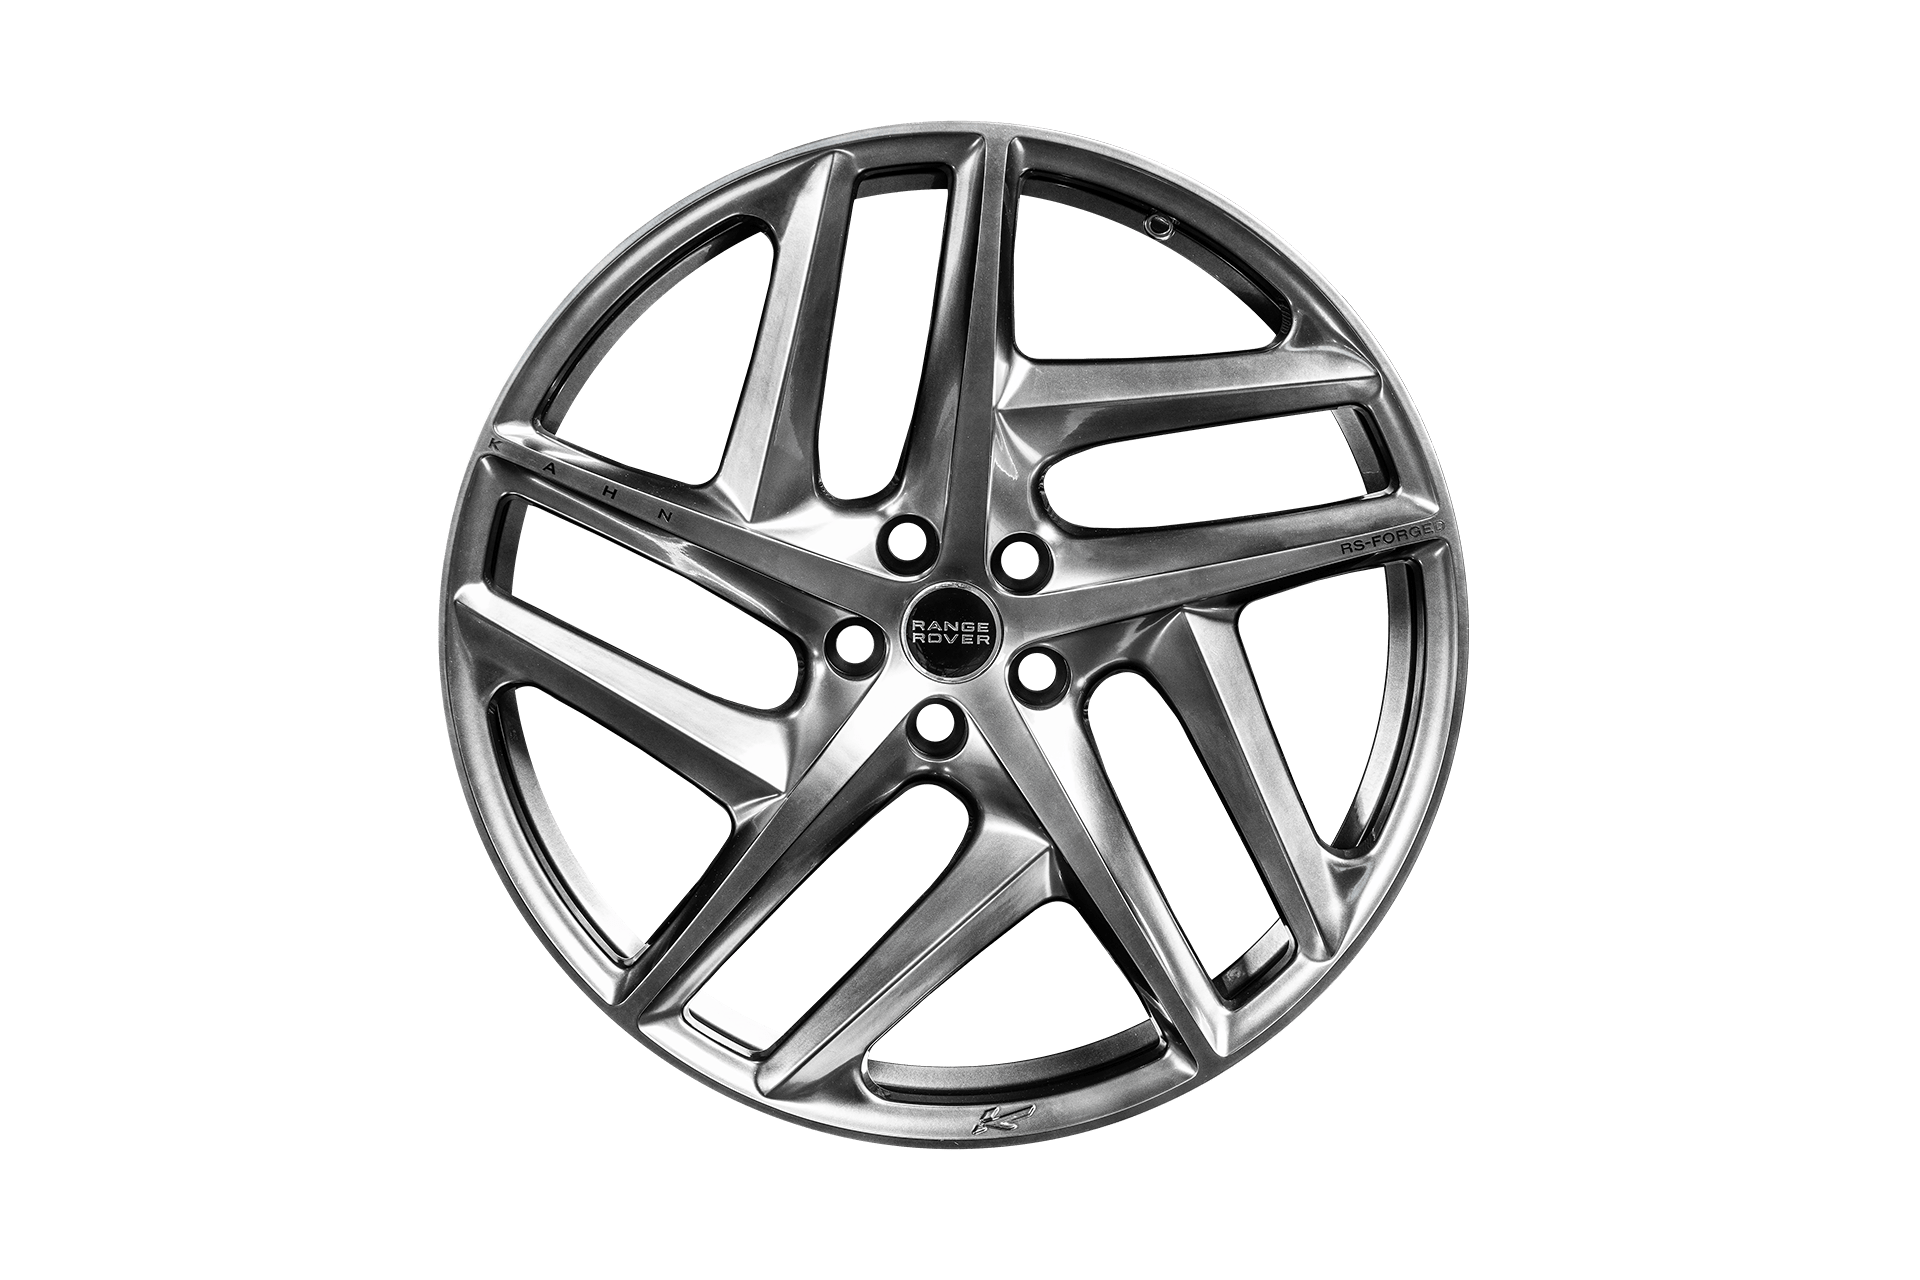 Range Rover Sport SVR (2018-PRESENT) Type 52 RS-Forged Alloy Wheels